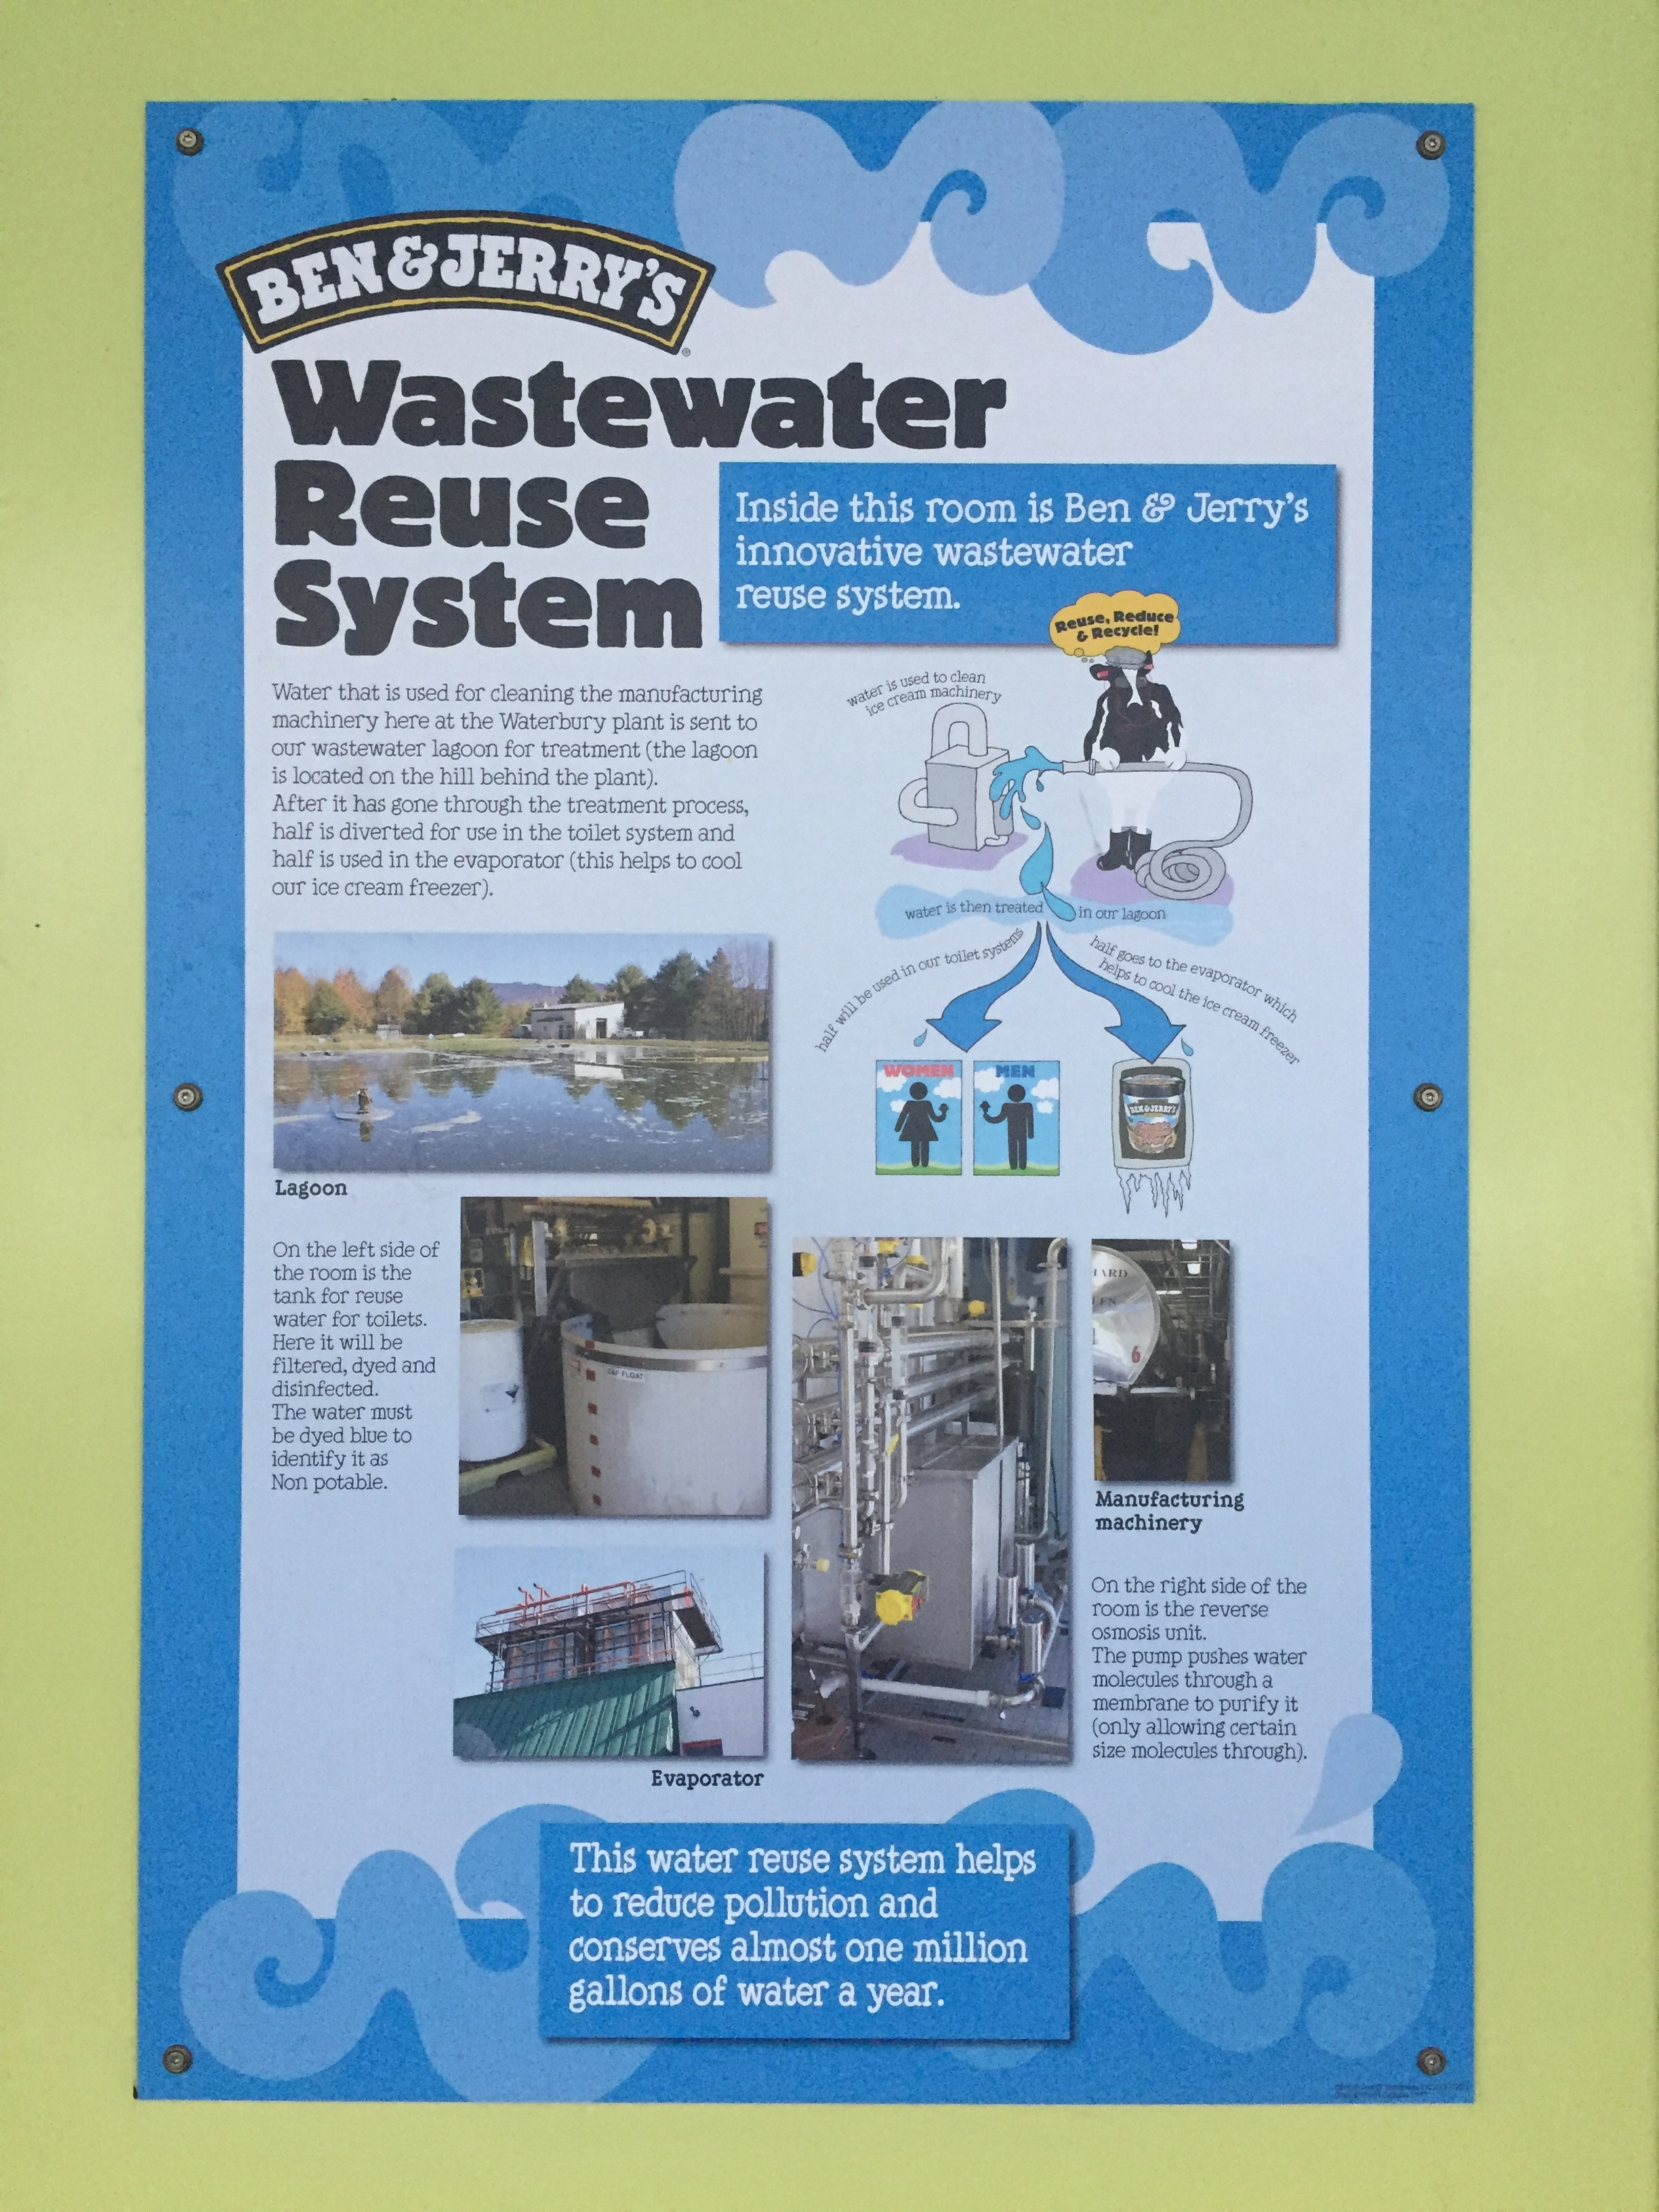 Ben & Jerry's reusing their water and keeping lakes around them clean.